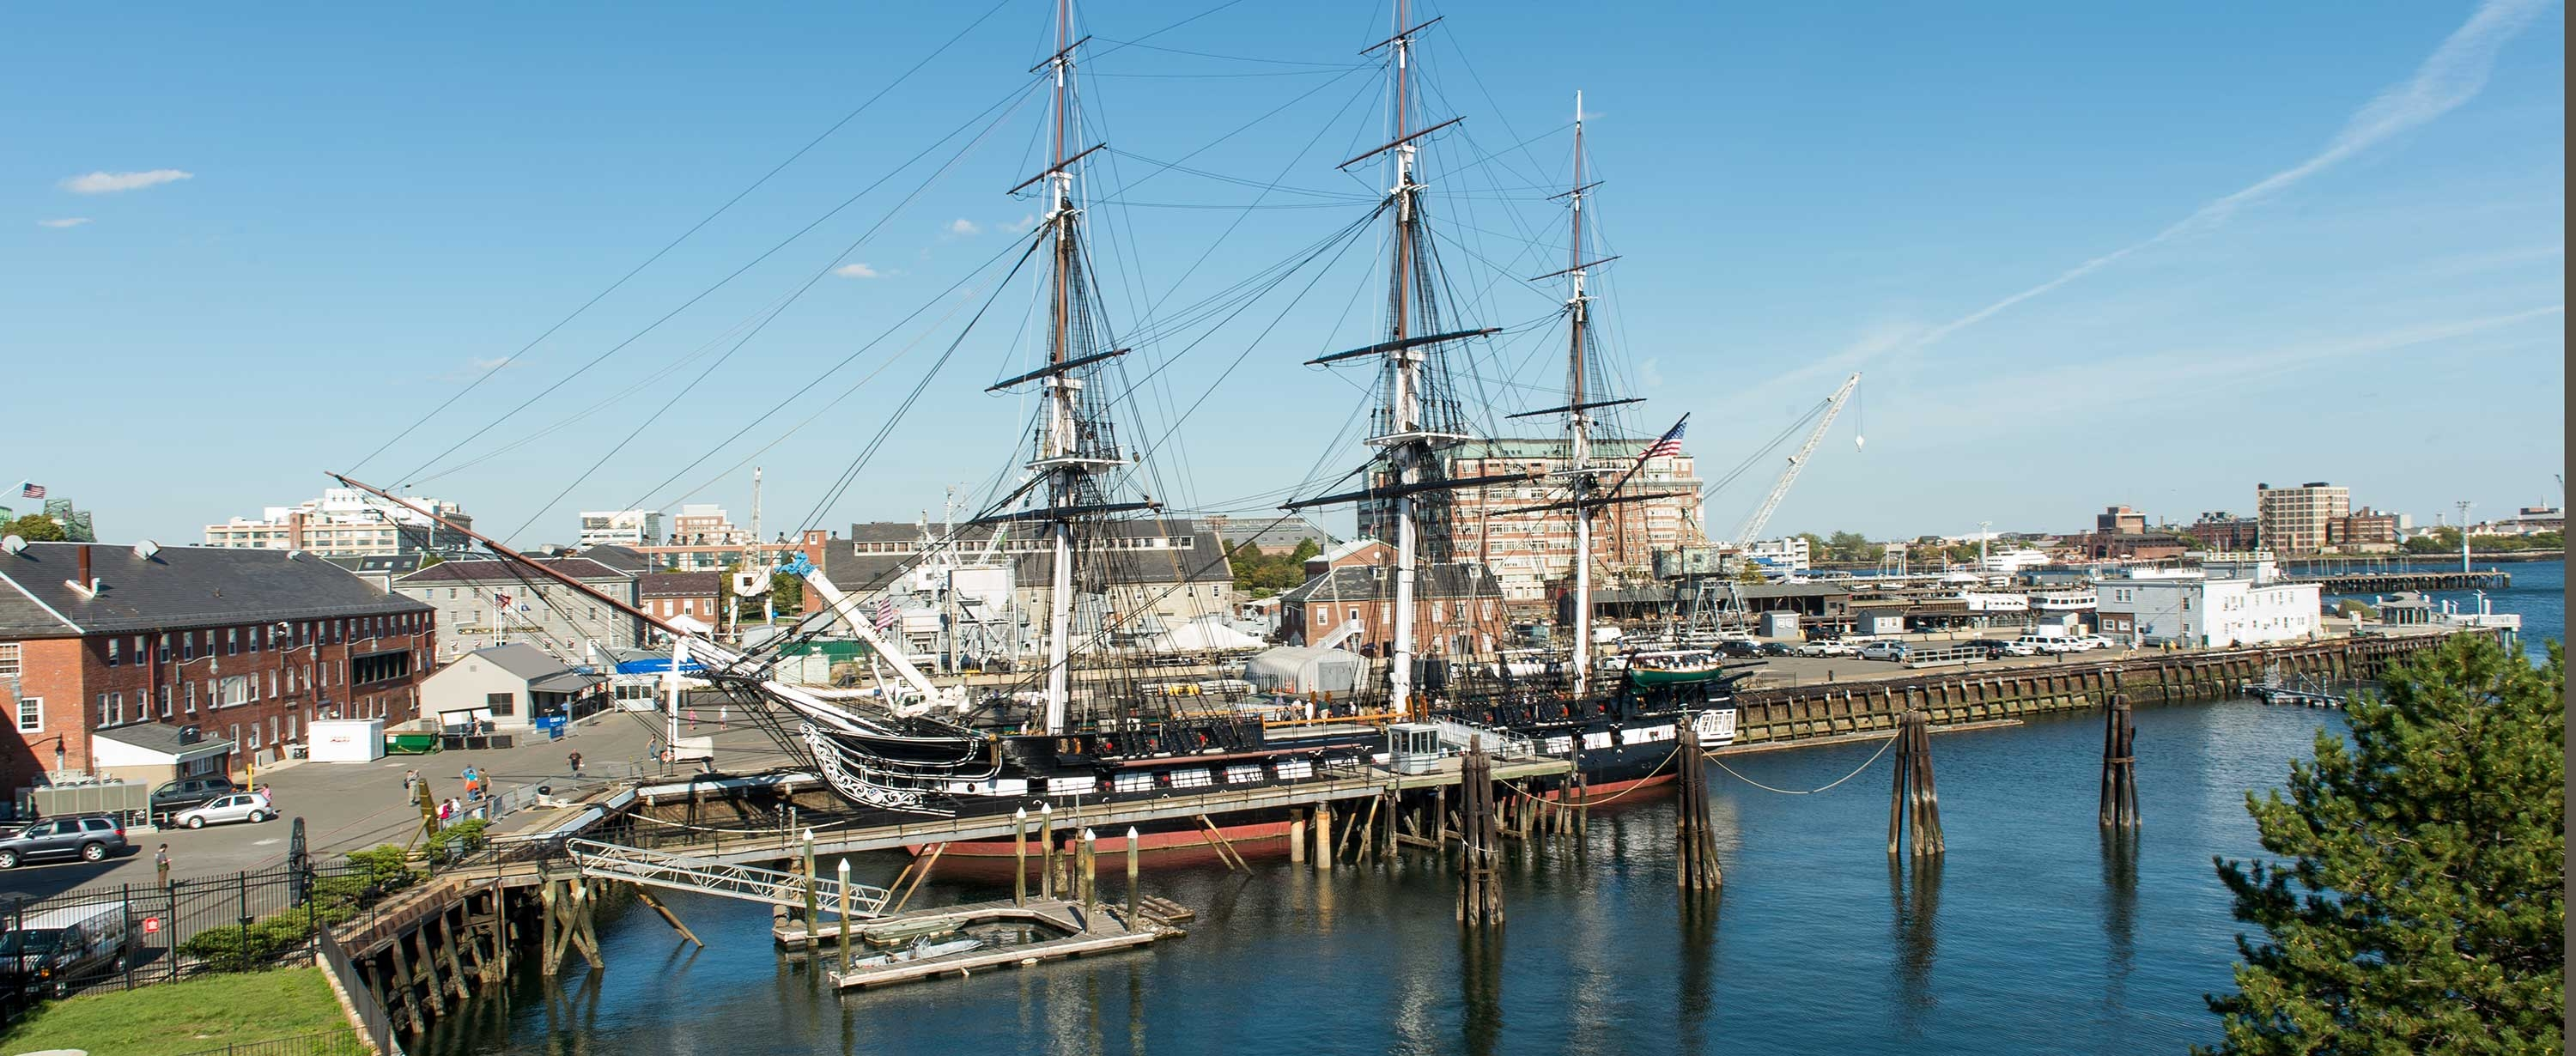 Photo of the U.S.S. Constitution in the Charlestown Navy Yard with Boston in the background